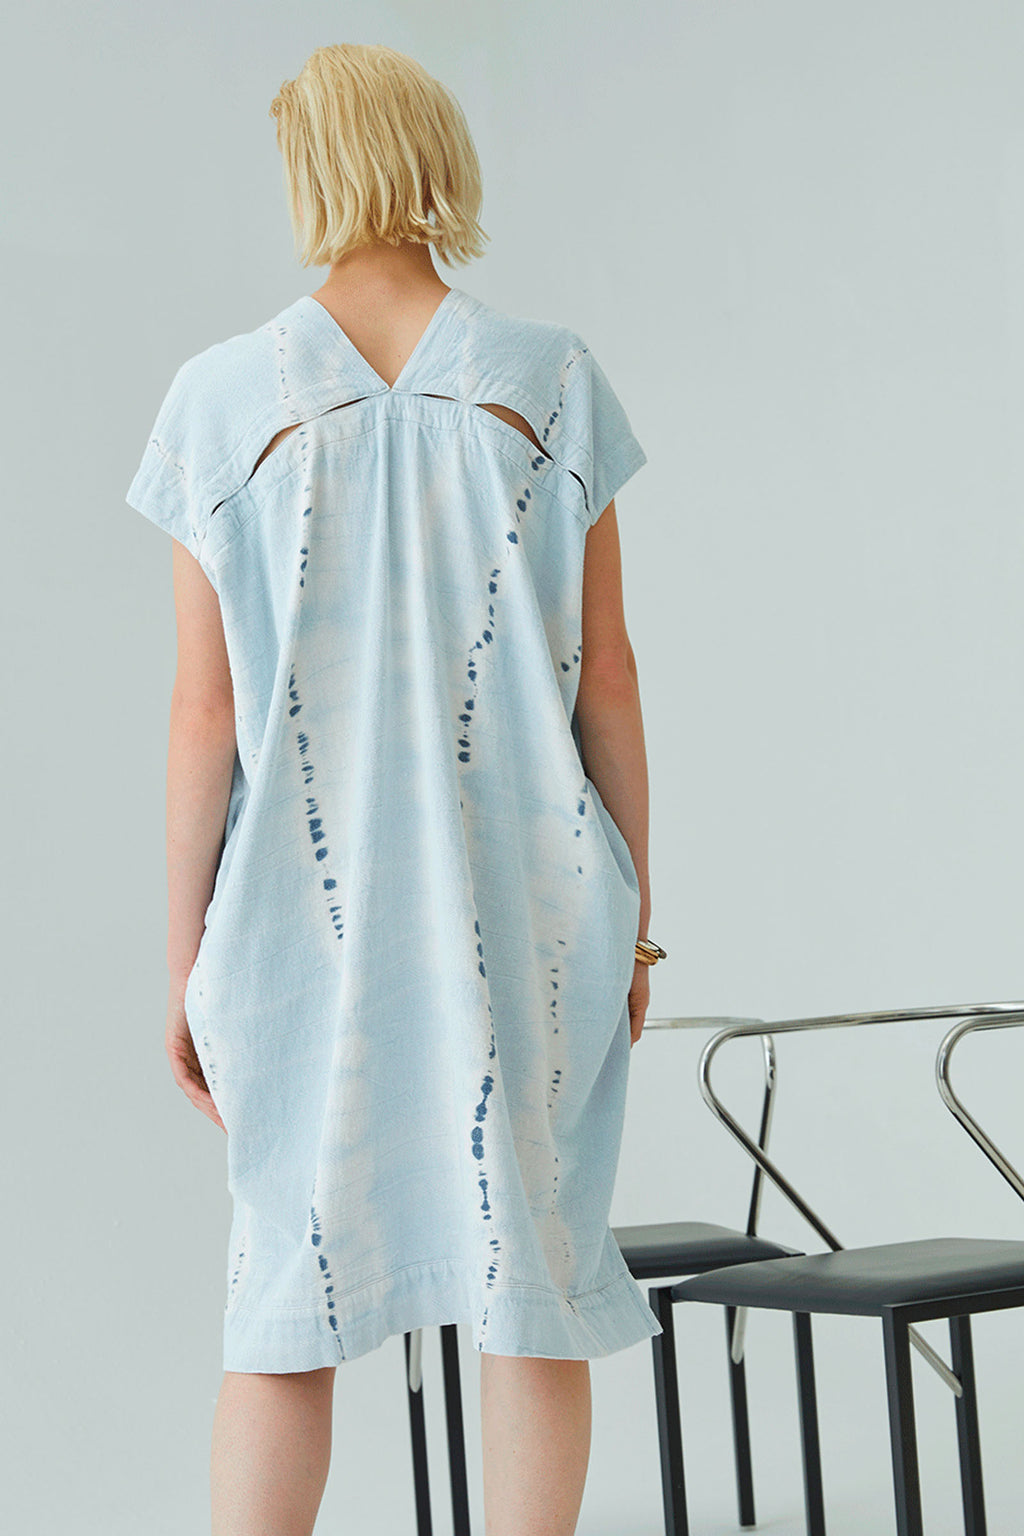 Atelier Delphine Cresent Dress in Ice Wash Tie Dye